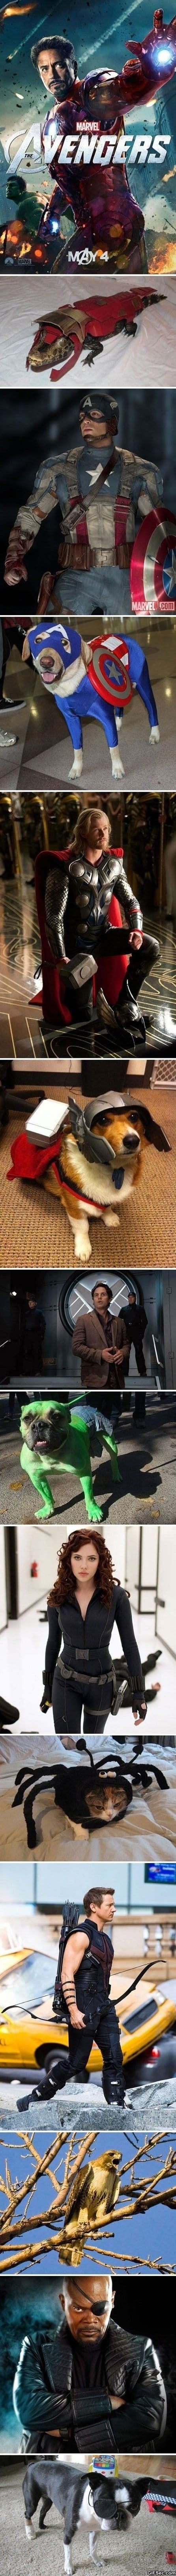 lol-awengers-and-their-pets